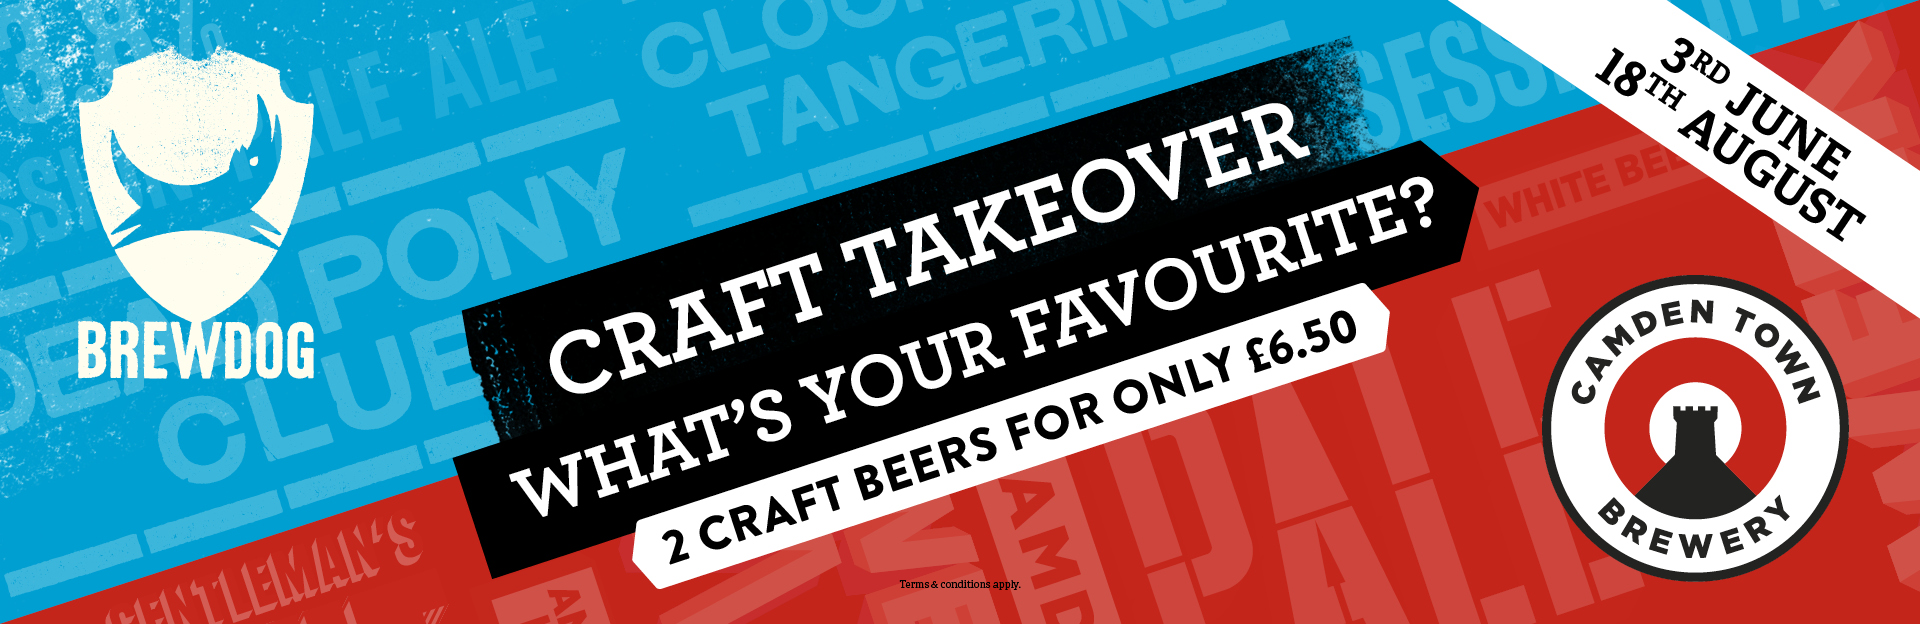 Craft Takeover at The Hole in the Wall